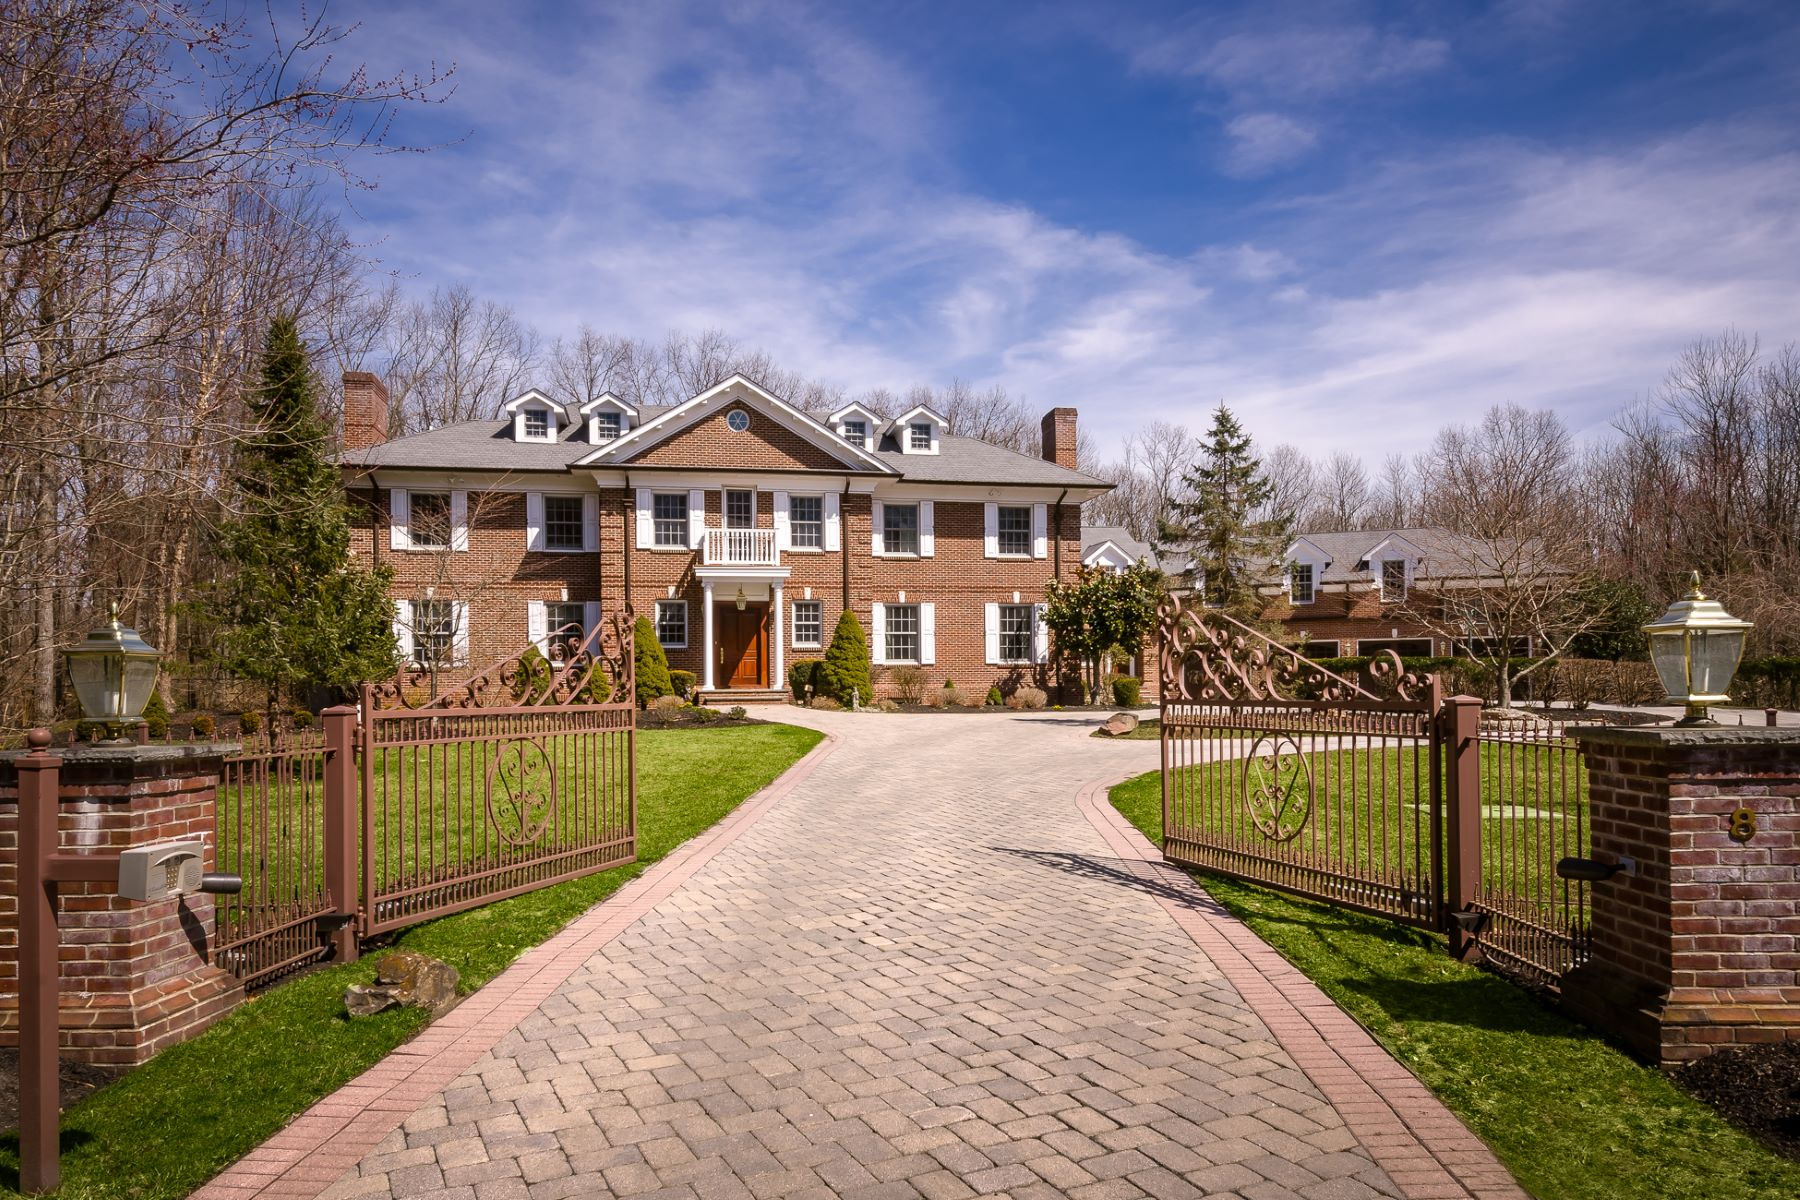 Single Family Homes pour l Vente à Stonybrook Manor: Once-in-a-Lifetime Magnificence 8 Players Lane, Princeton, New Jersey 08540 États-Unis